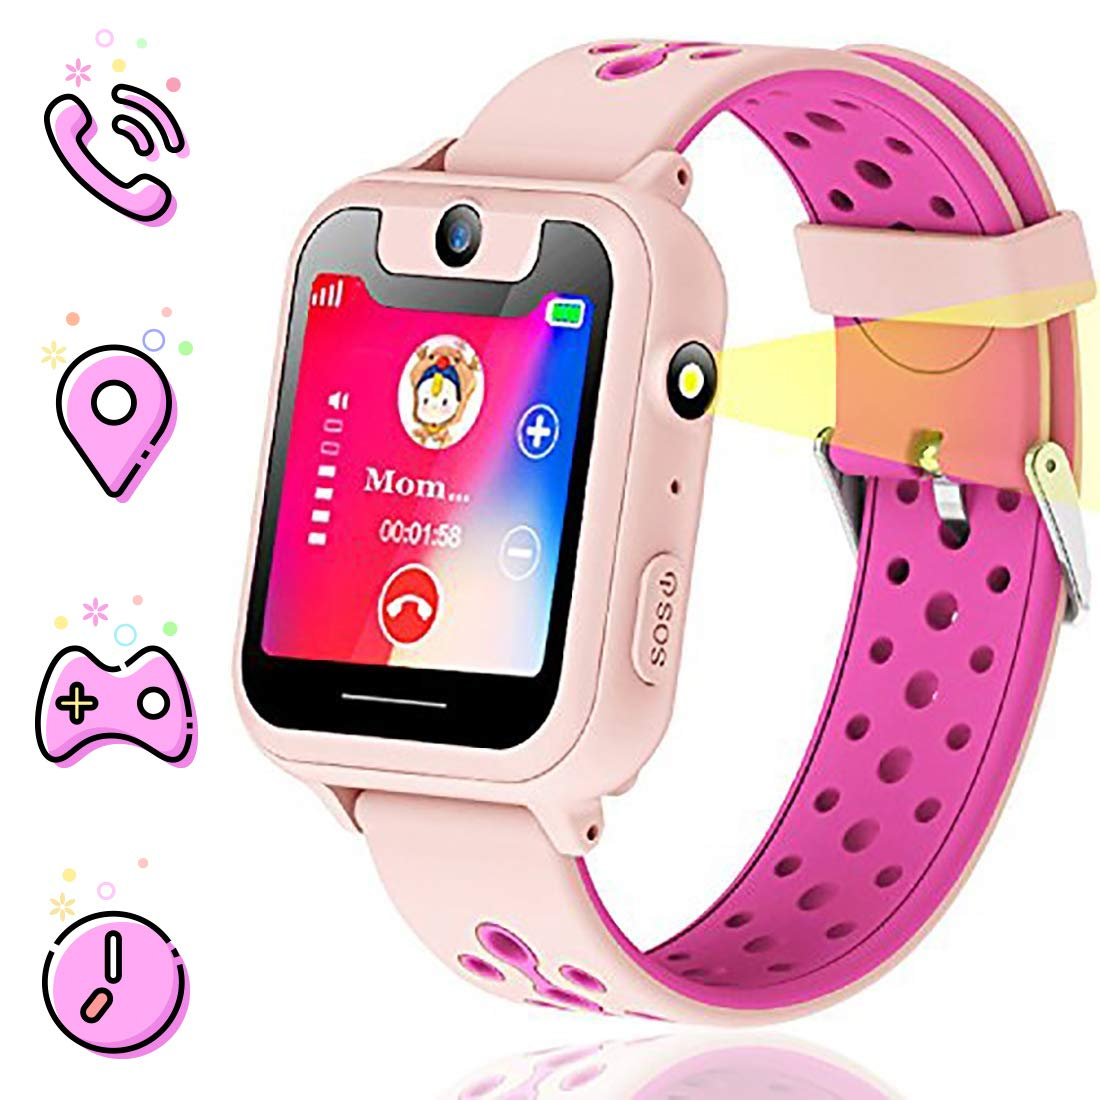 Themoemoe Kids smartwatch, Kids GPS Watch Gifts for 4-12 Year Old Girls Touchscreen Camera Game Compatible with 2G T-Mobile Birthday Gift for Kids(S6-Pink) by Themoemoe